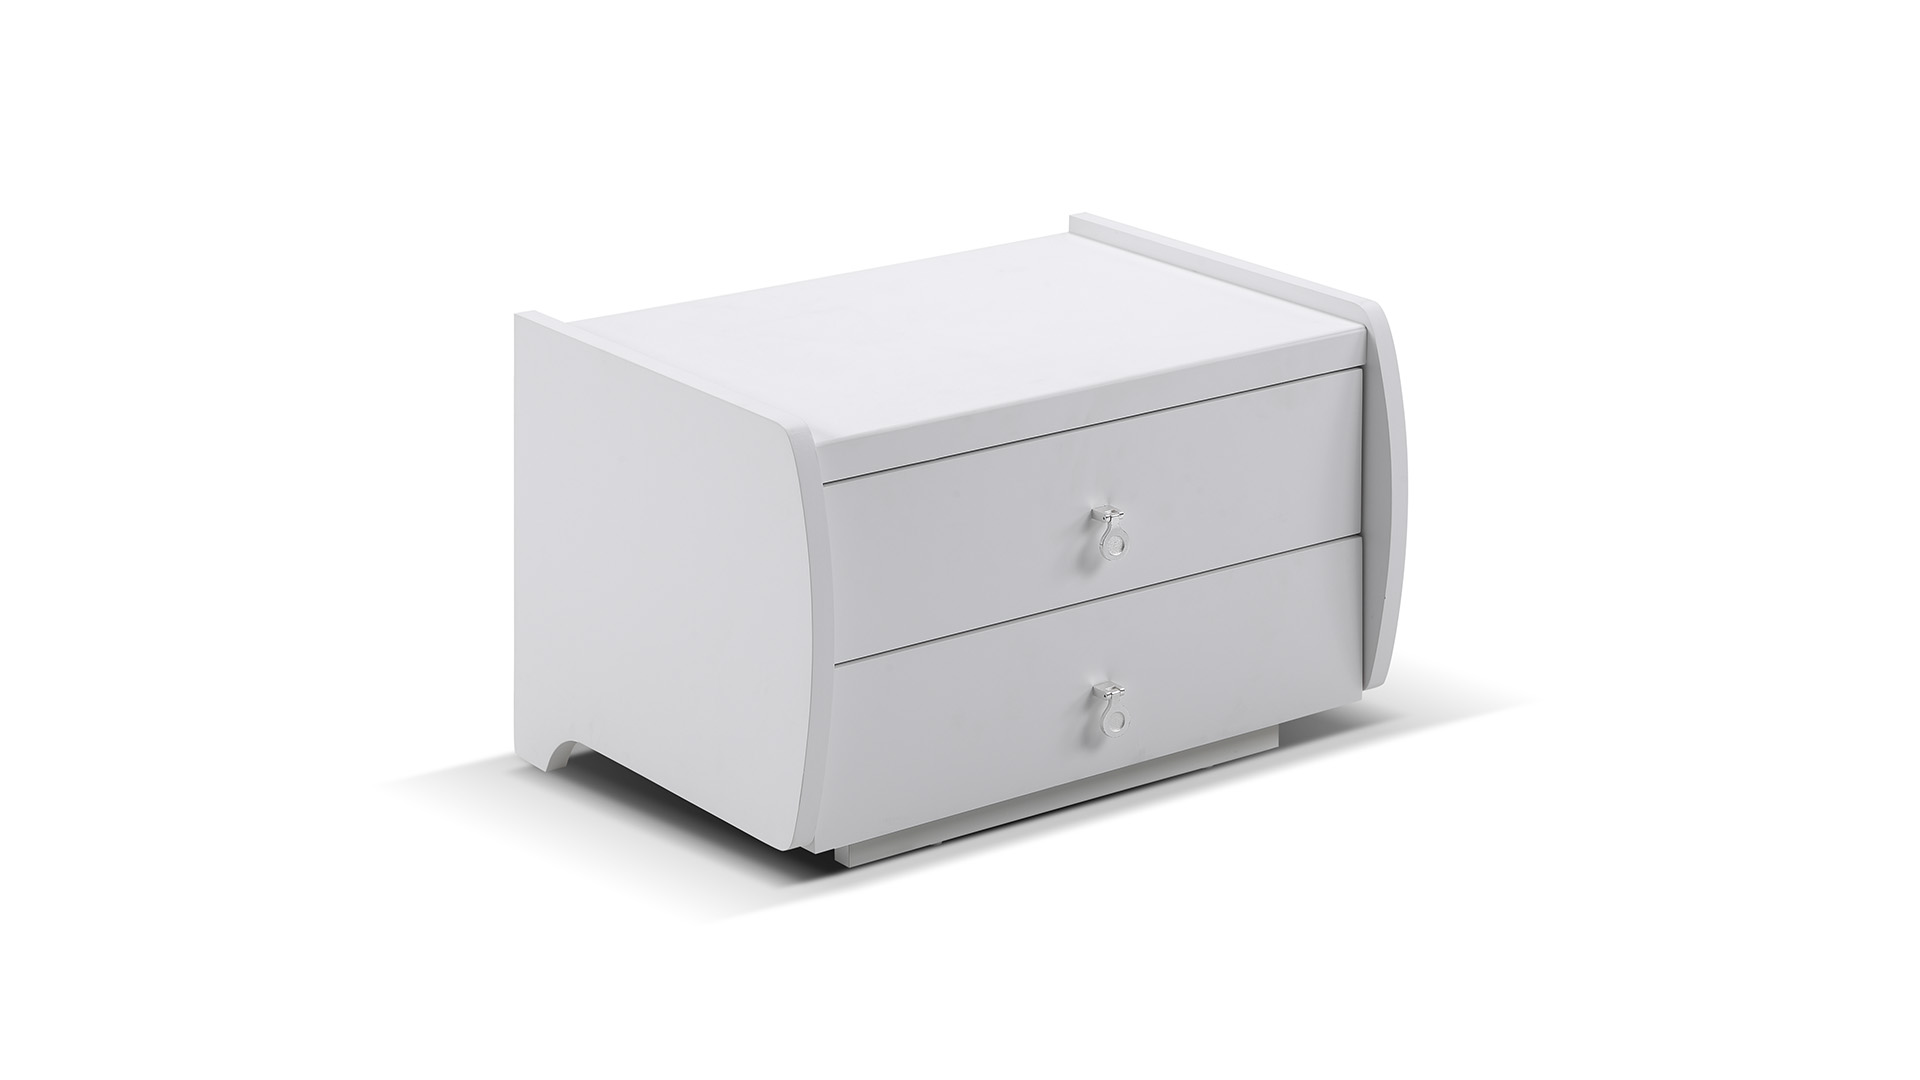 <p>Material:</p><p>*Solid wood+MDF board+white high glossy</p><p><br/></p><p>Size:</p><p>*550*400*360mm</p><p><br/></p><p>Number of drawers:</p><p>*2 Drawers</p>